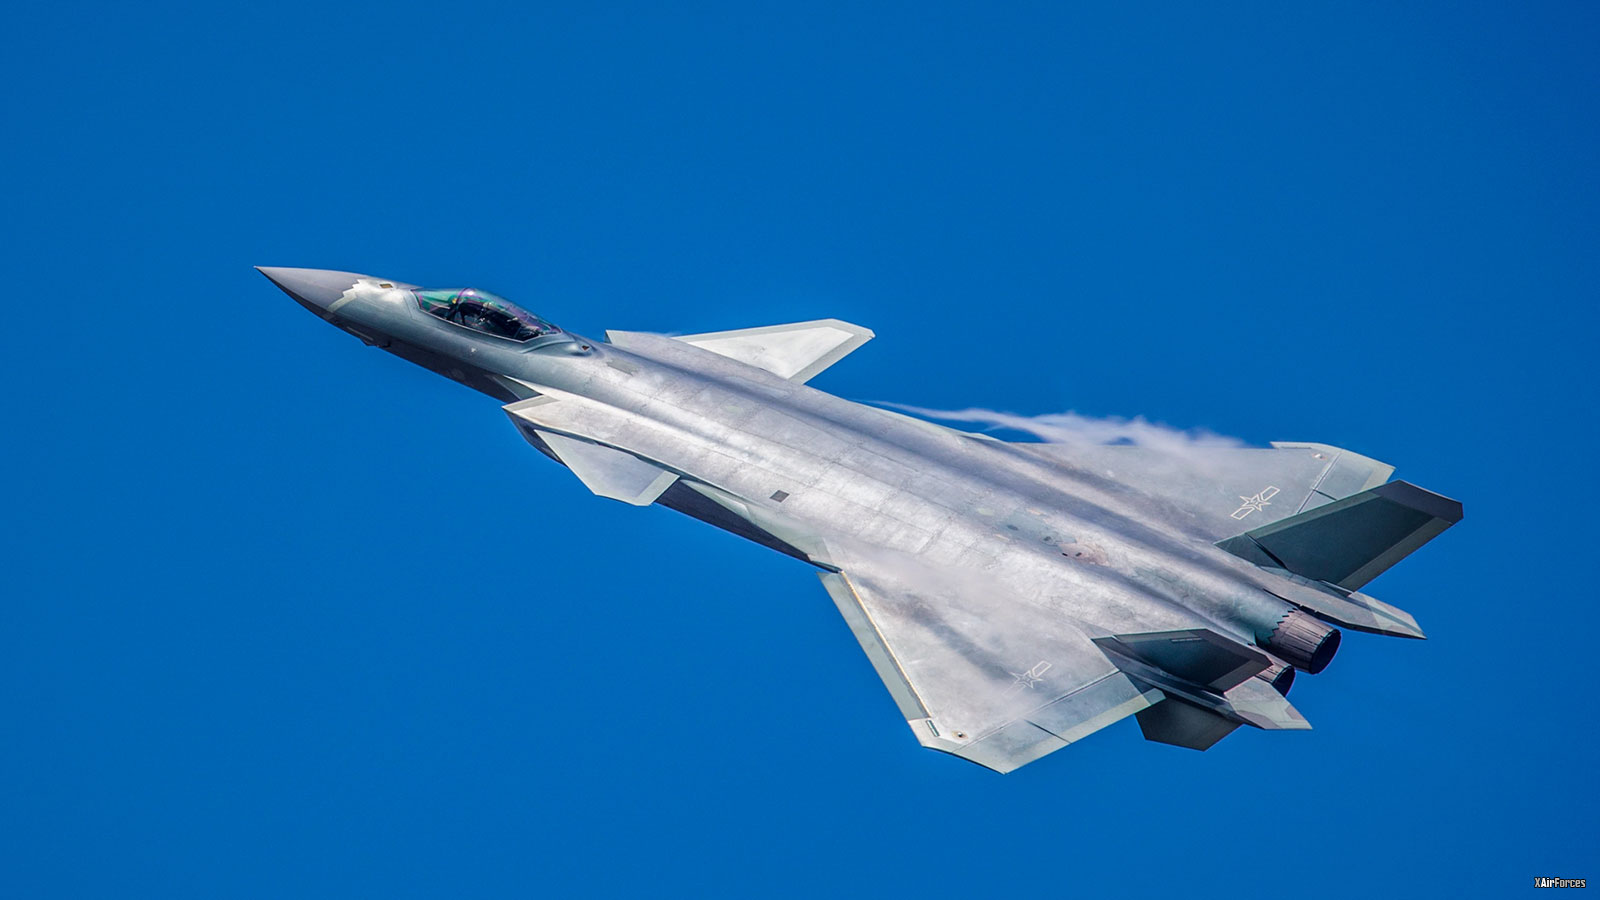 2018 Zhuhai Air Show Chinese J-20 Stealth Fighter Jet